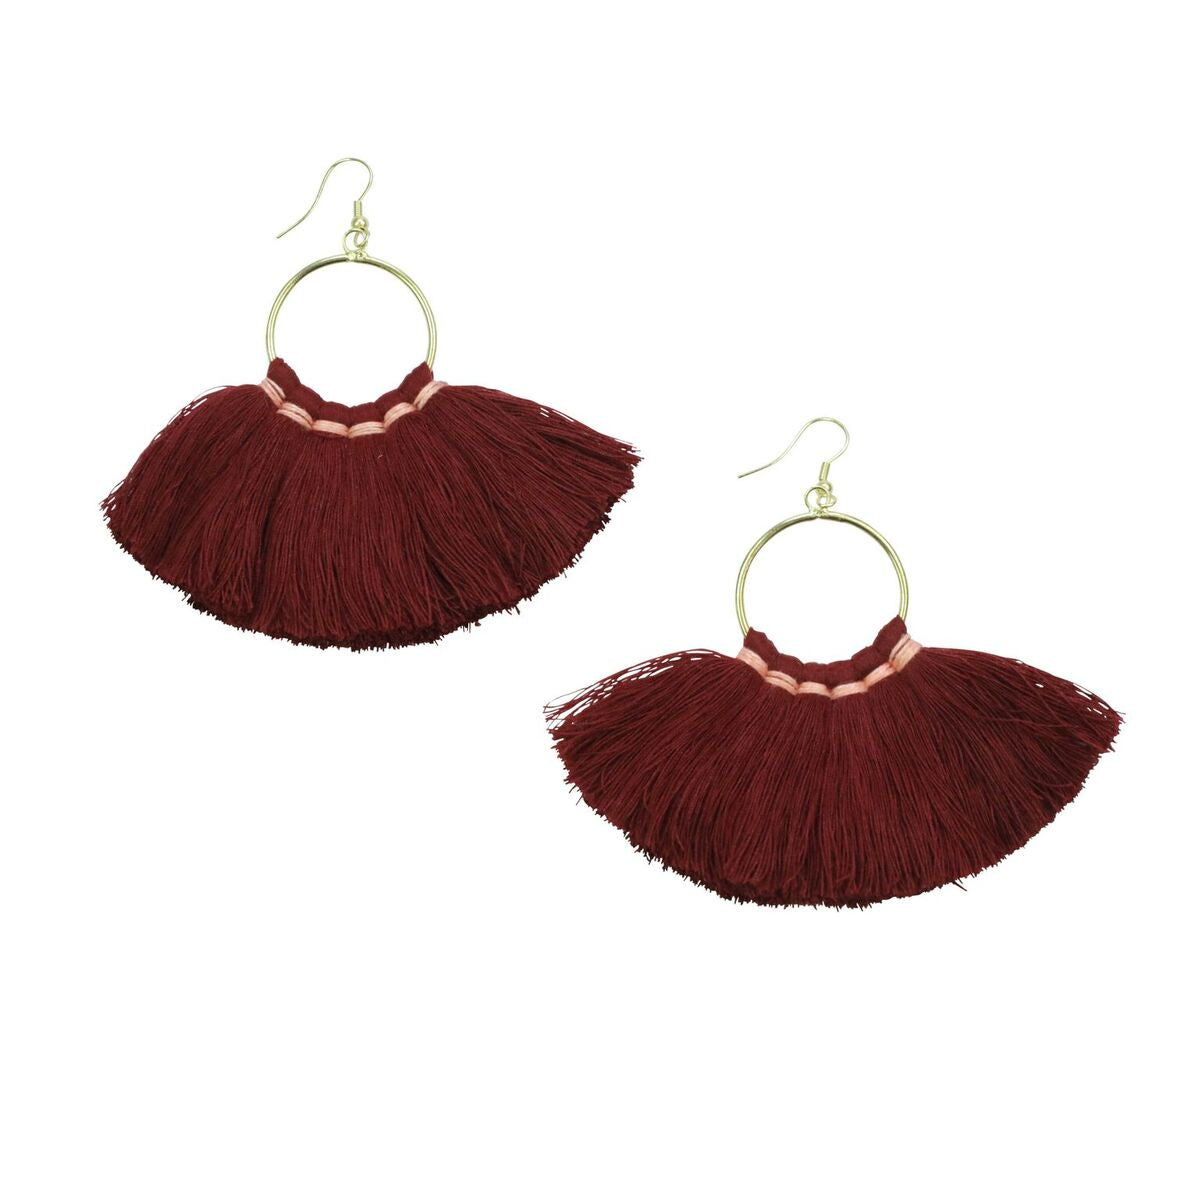 FRINGE EARRINGS - WINE